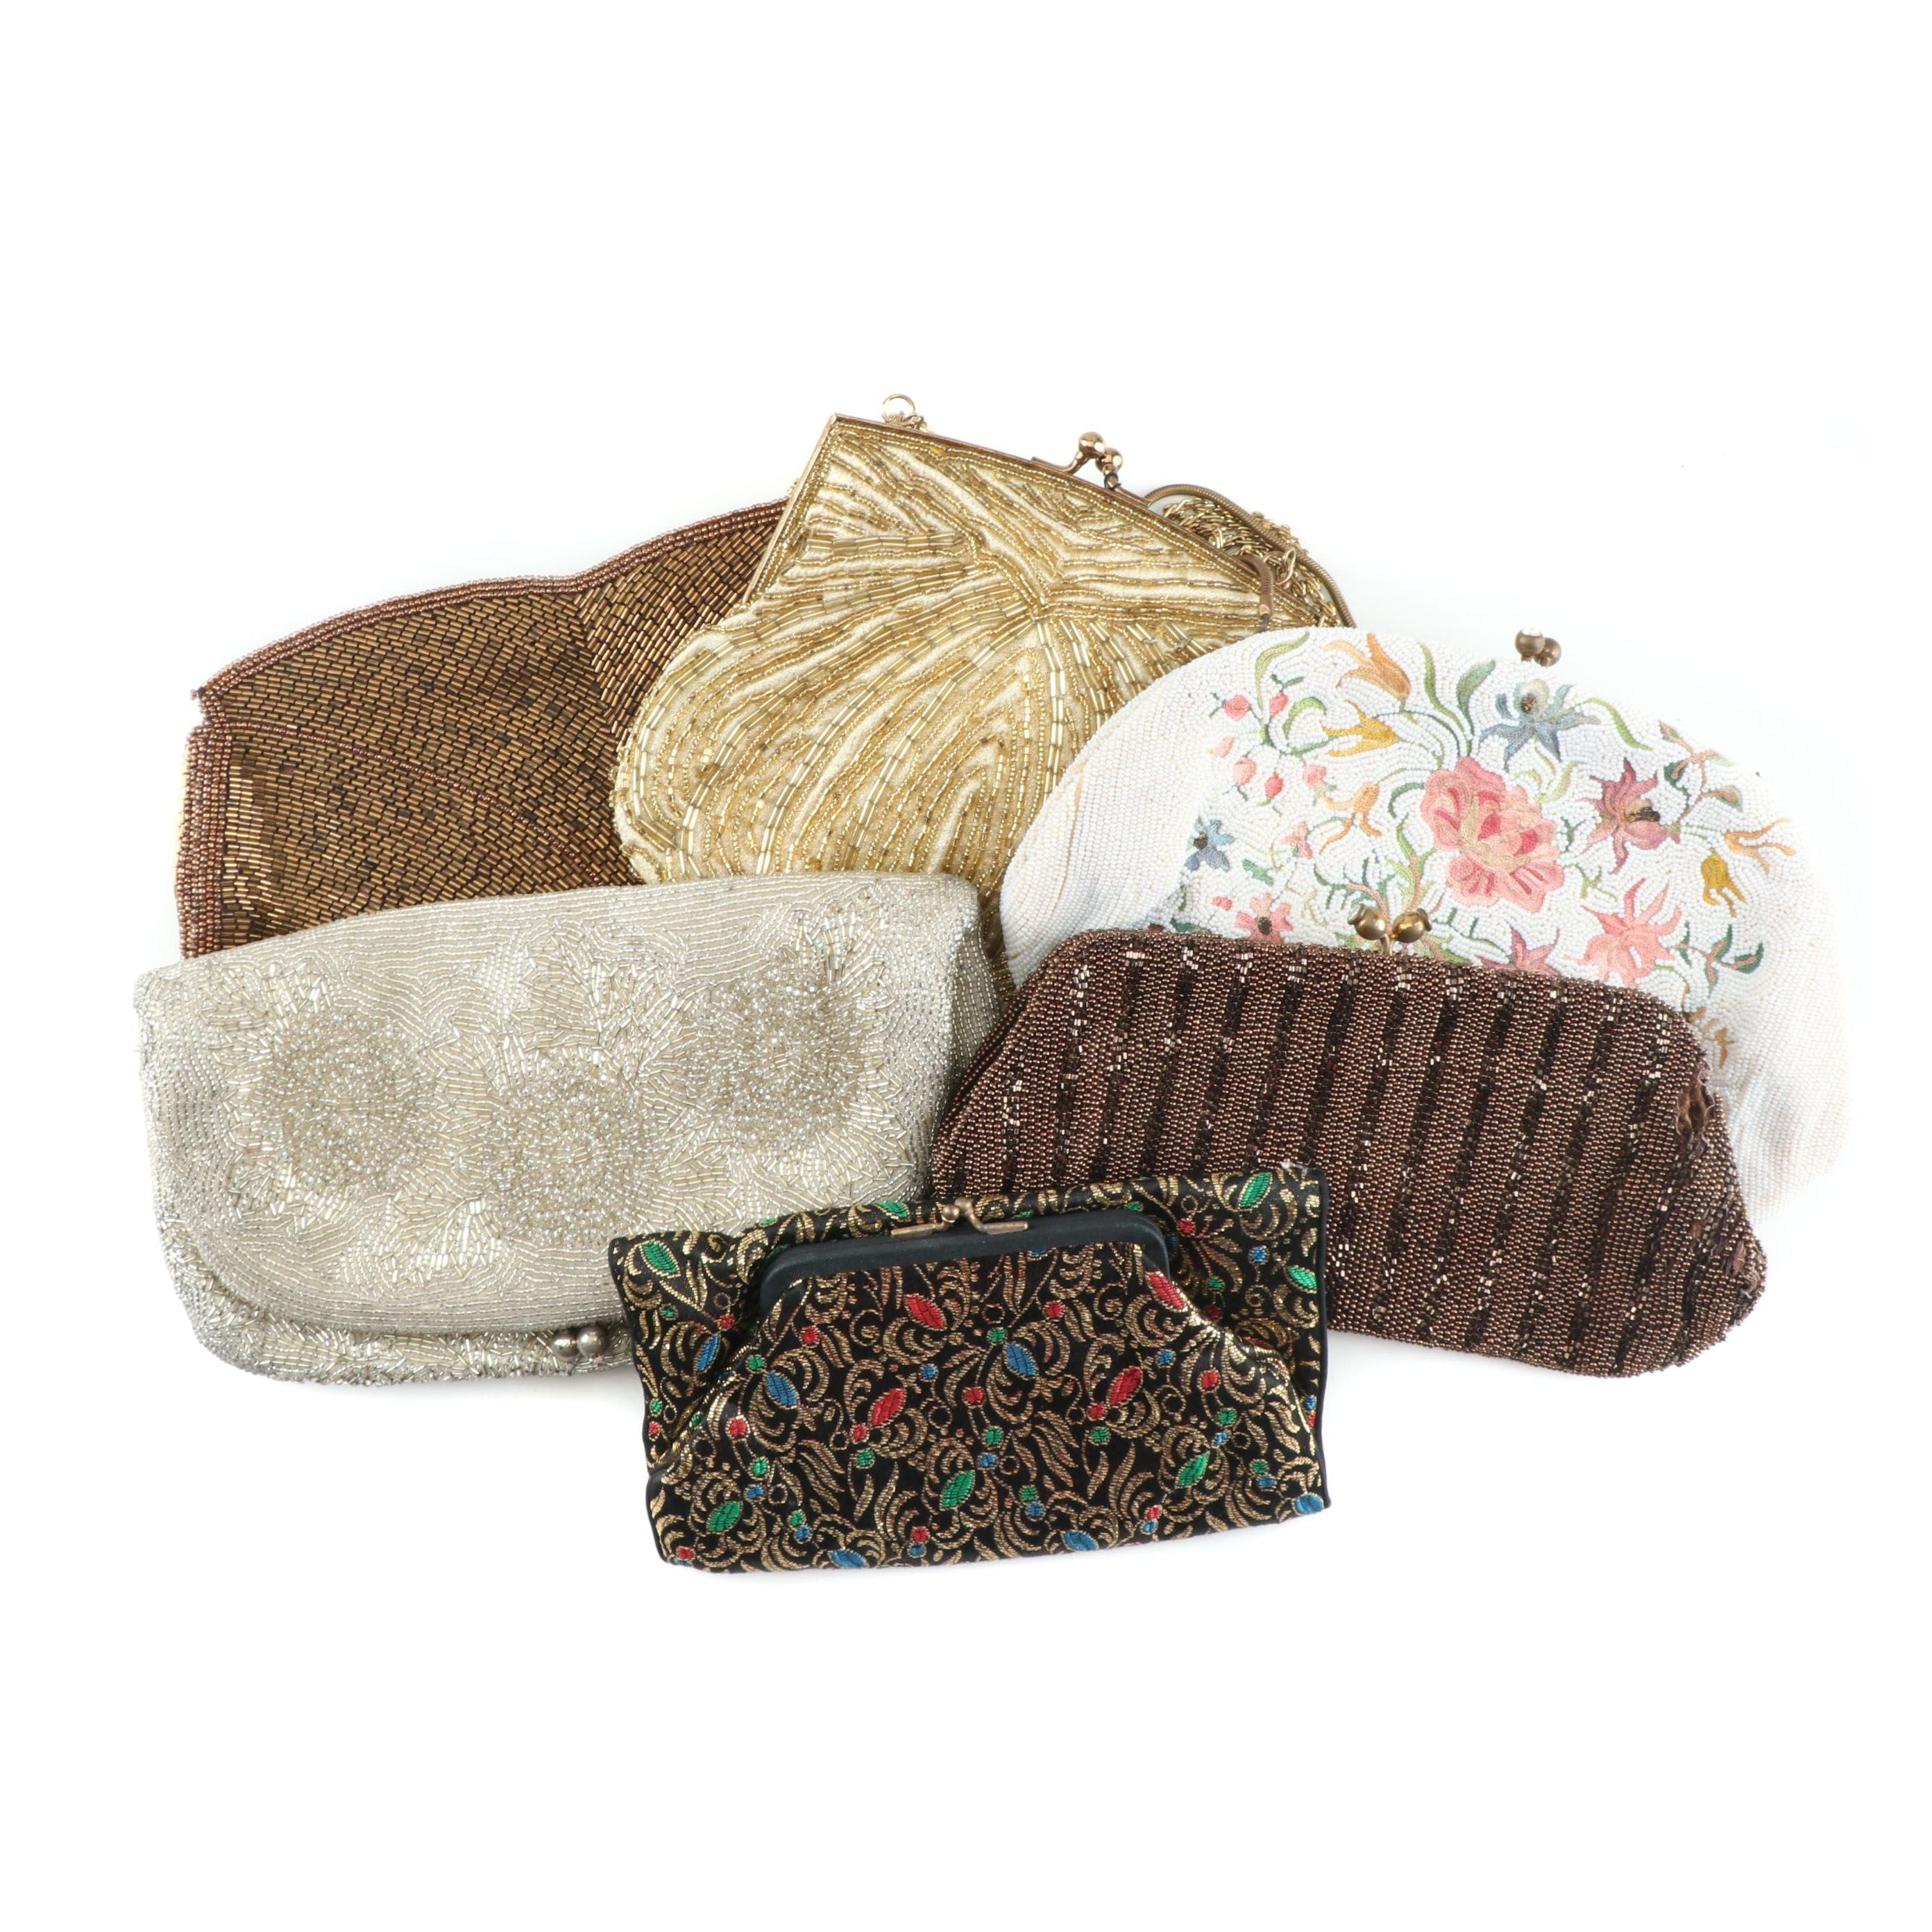 Vintage Beaded Clutch Evening Bags and Jacquard Clutch